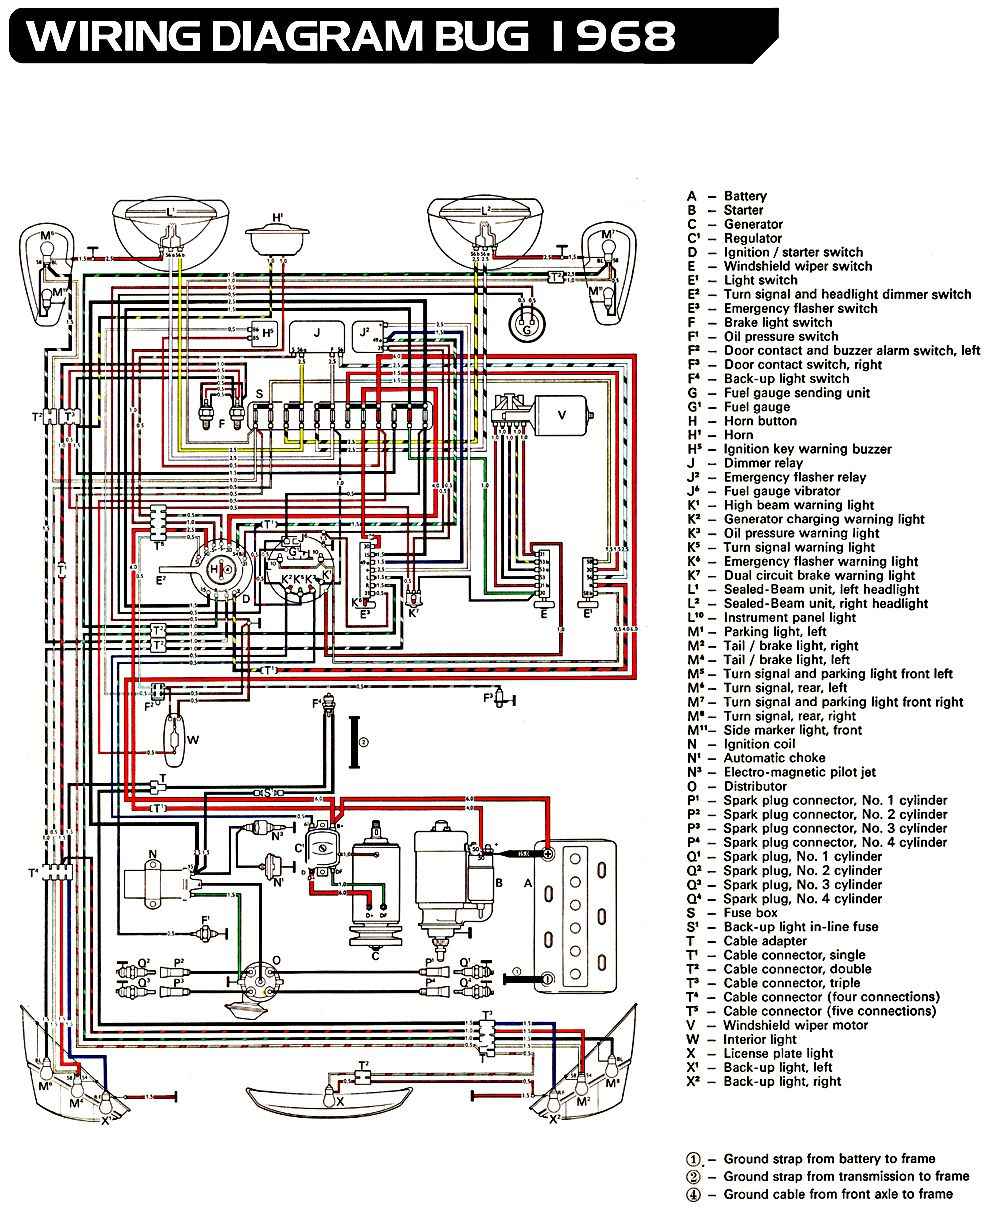 3a1908112d3826270ed5e3be362292bf vw bug ignition wiring diagram 73 vw wiring diagram free vw type 3 wiring harness at virtualis.co